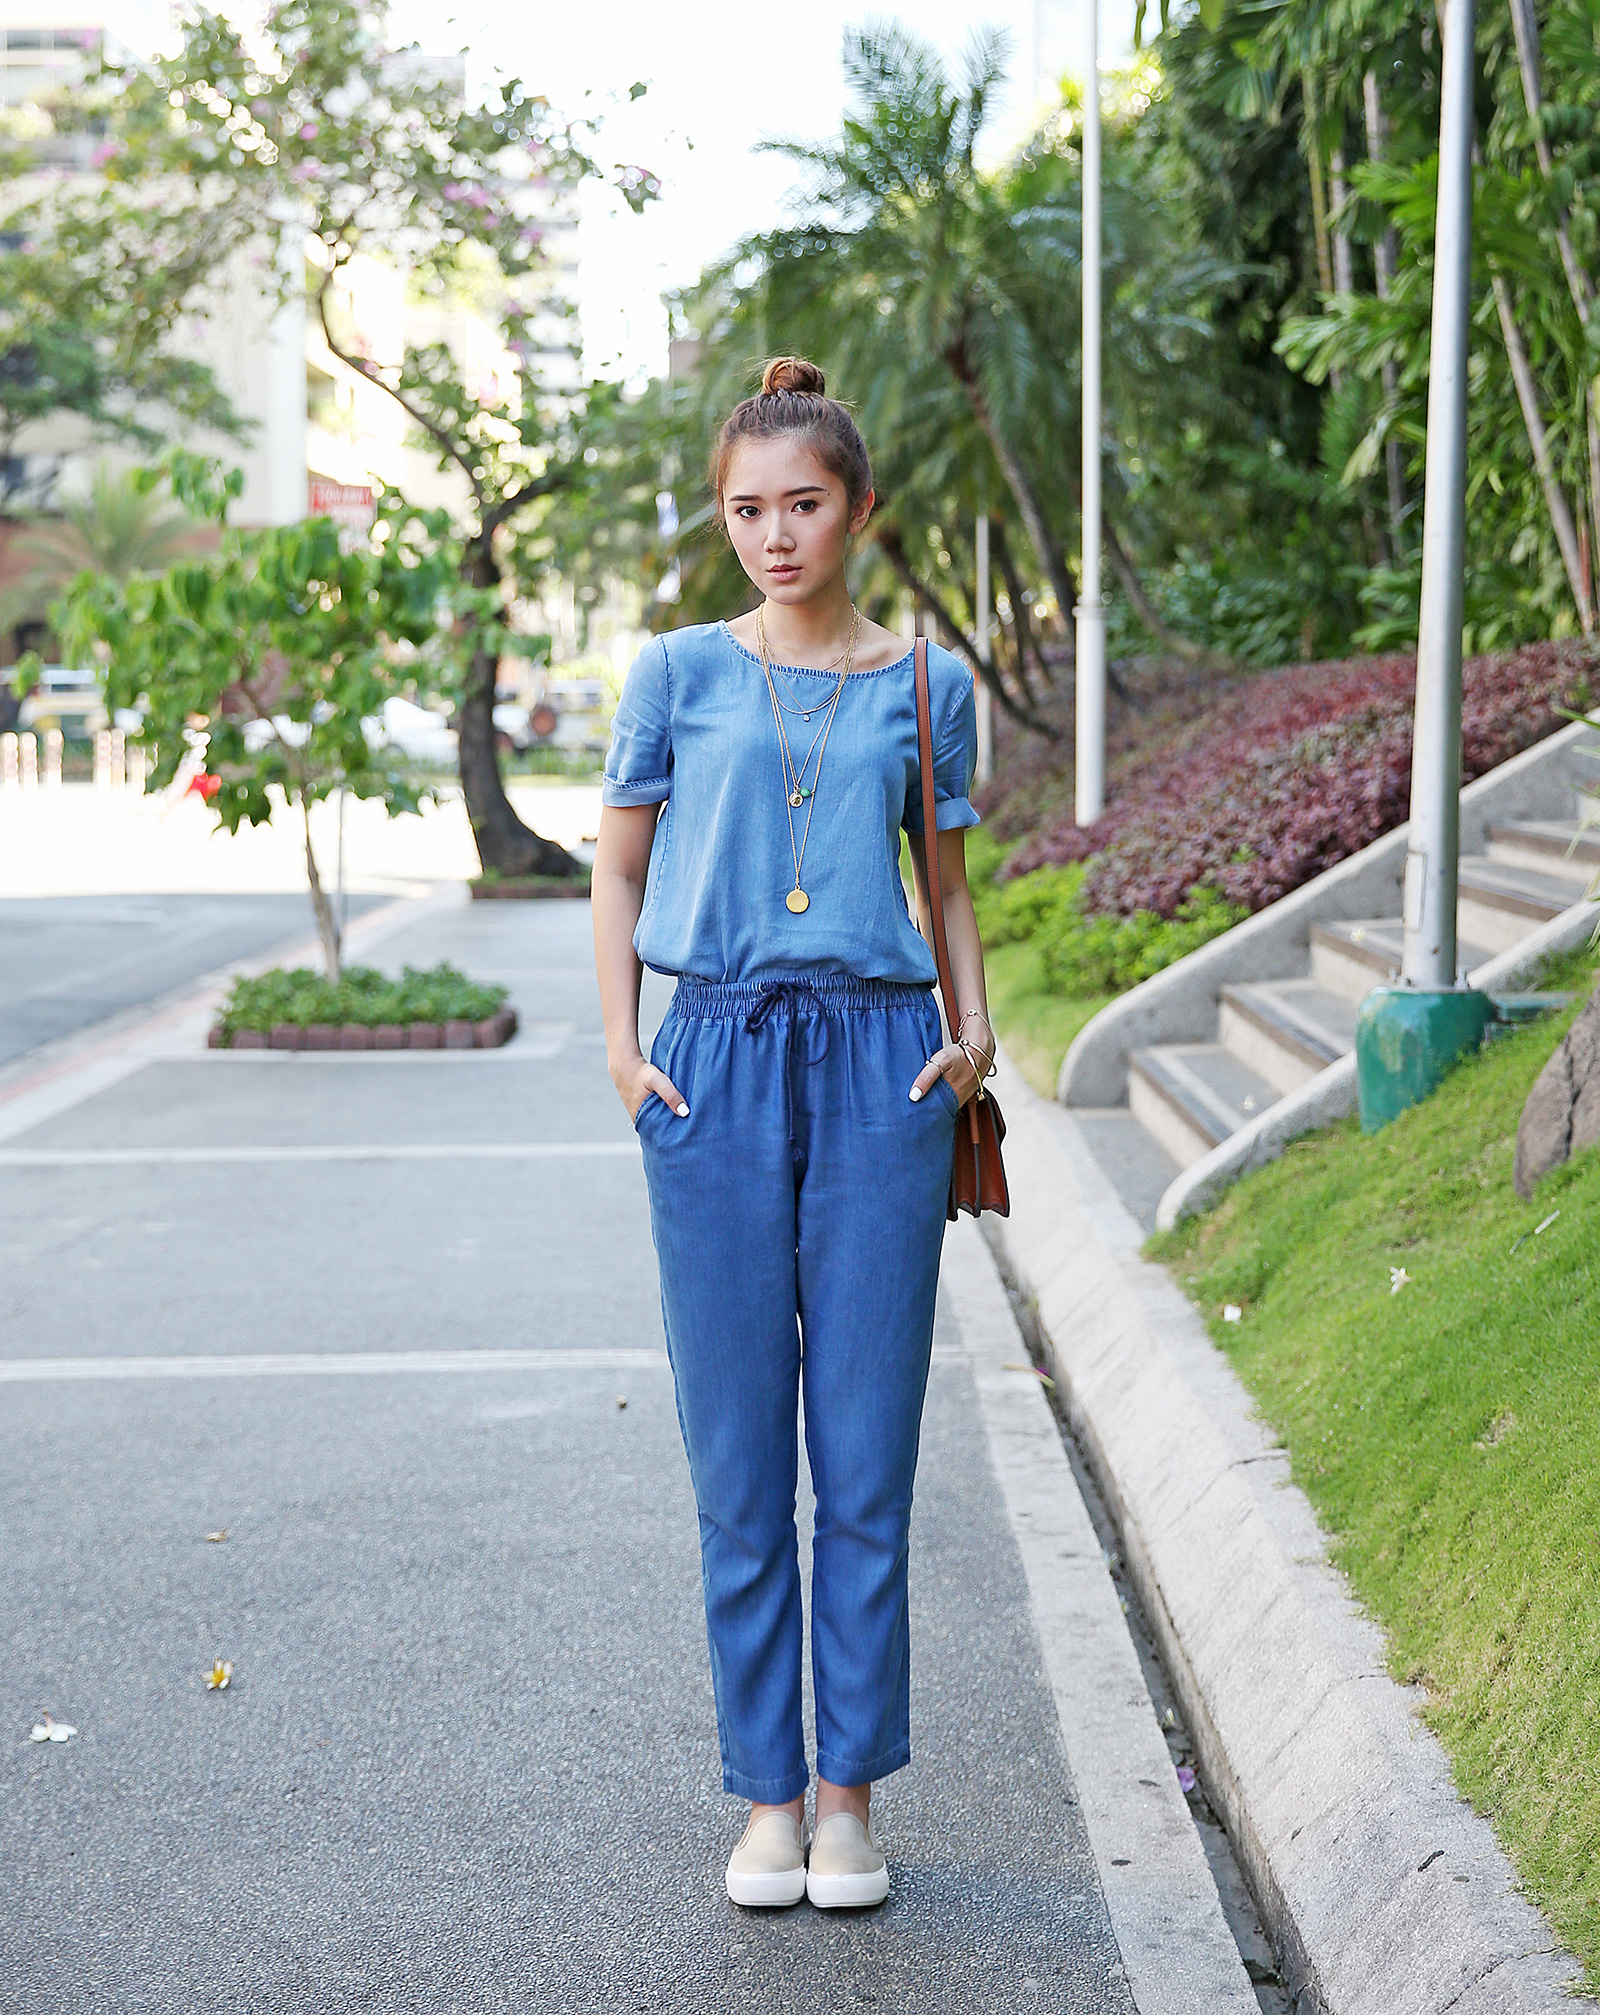 Mango all-denim look for travel | www.itscamilleco.com